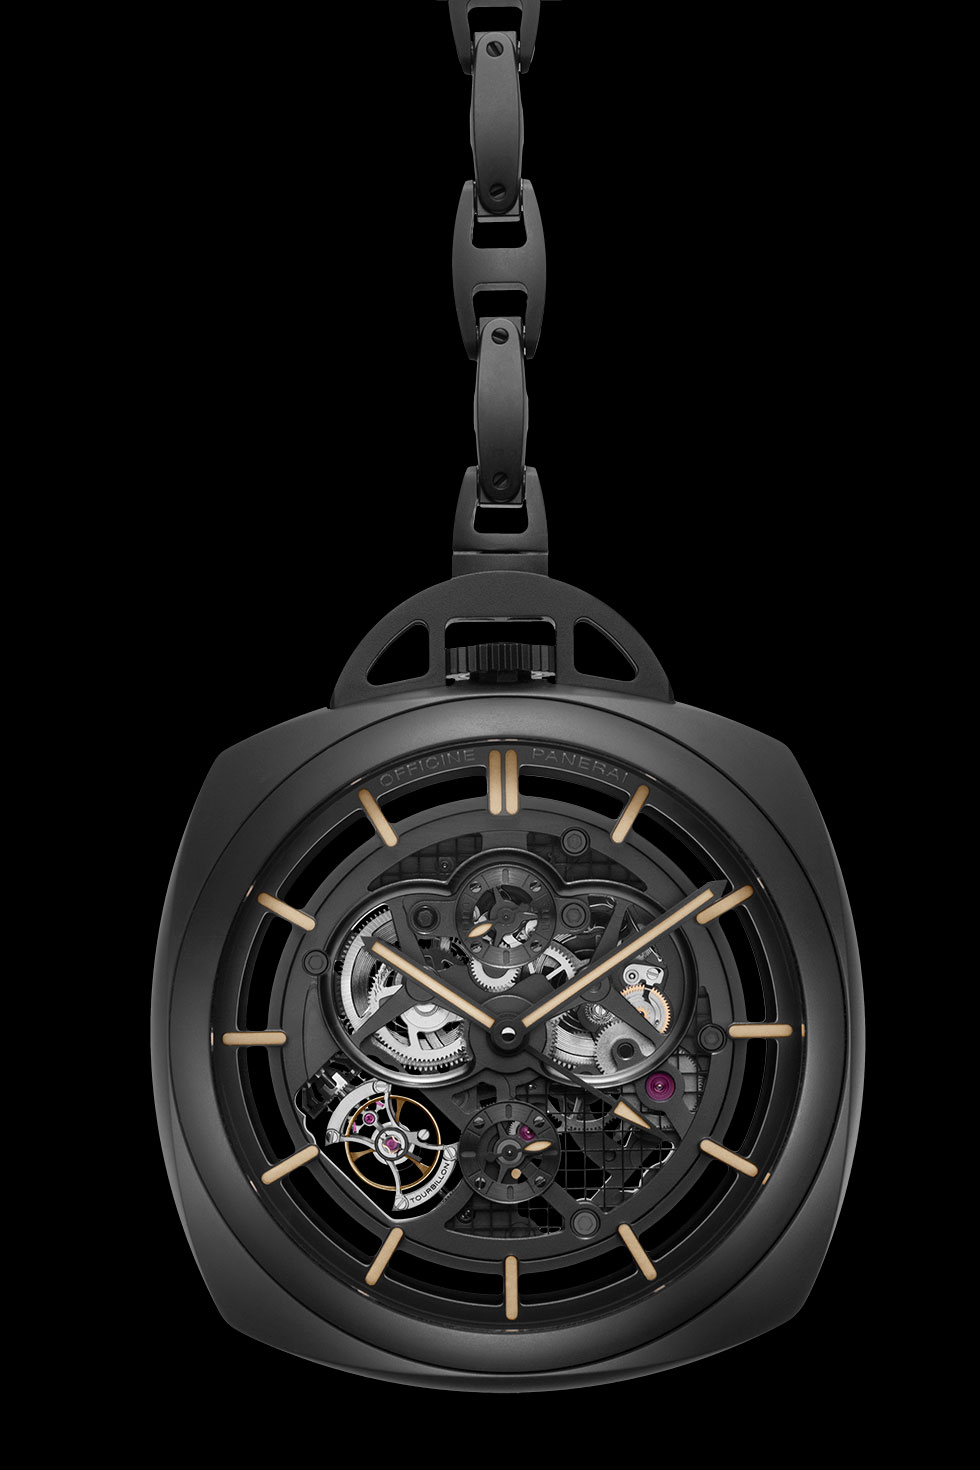 часы Panerai Pocket Watch Tourbillon GMT Ceramica